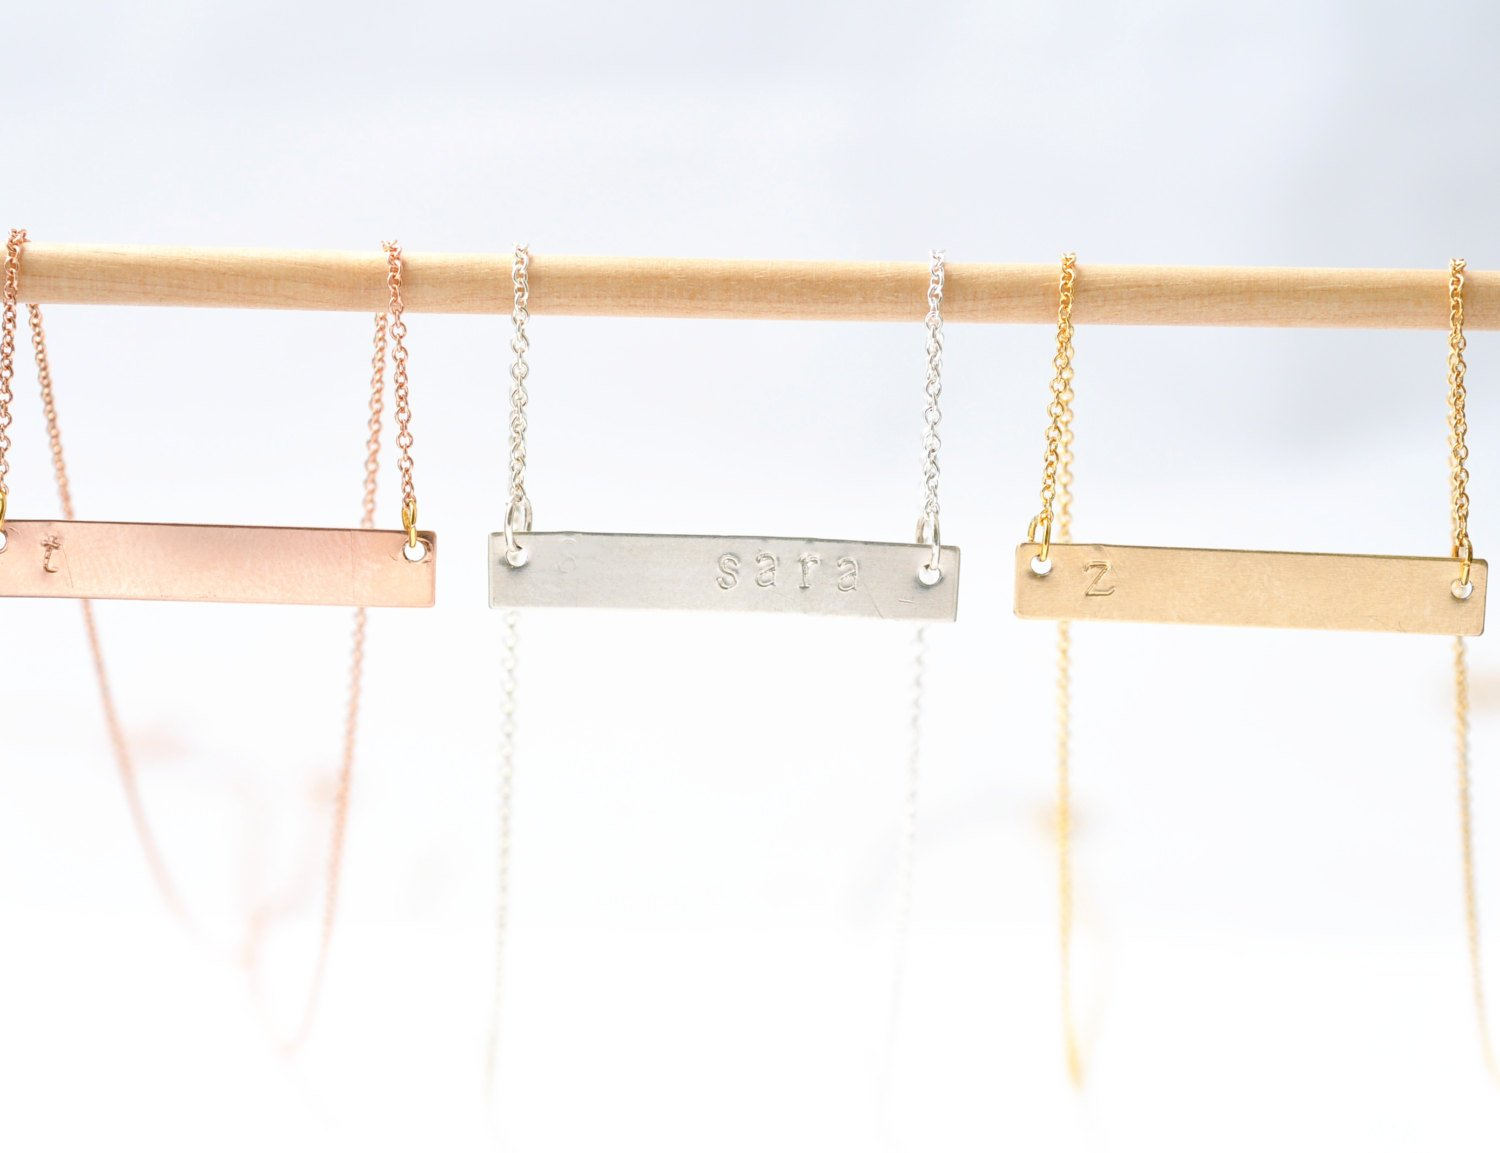 Rose Gold Bar Necklace: Personalized Gifts, Everyday Simple Jewelry